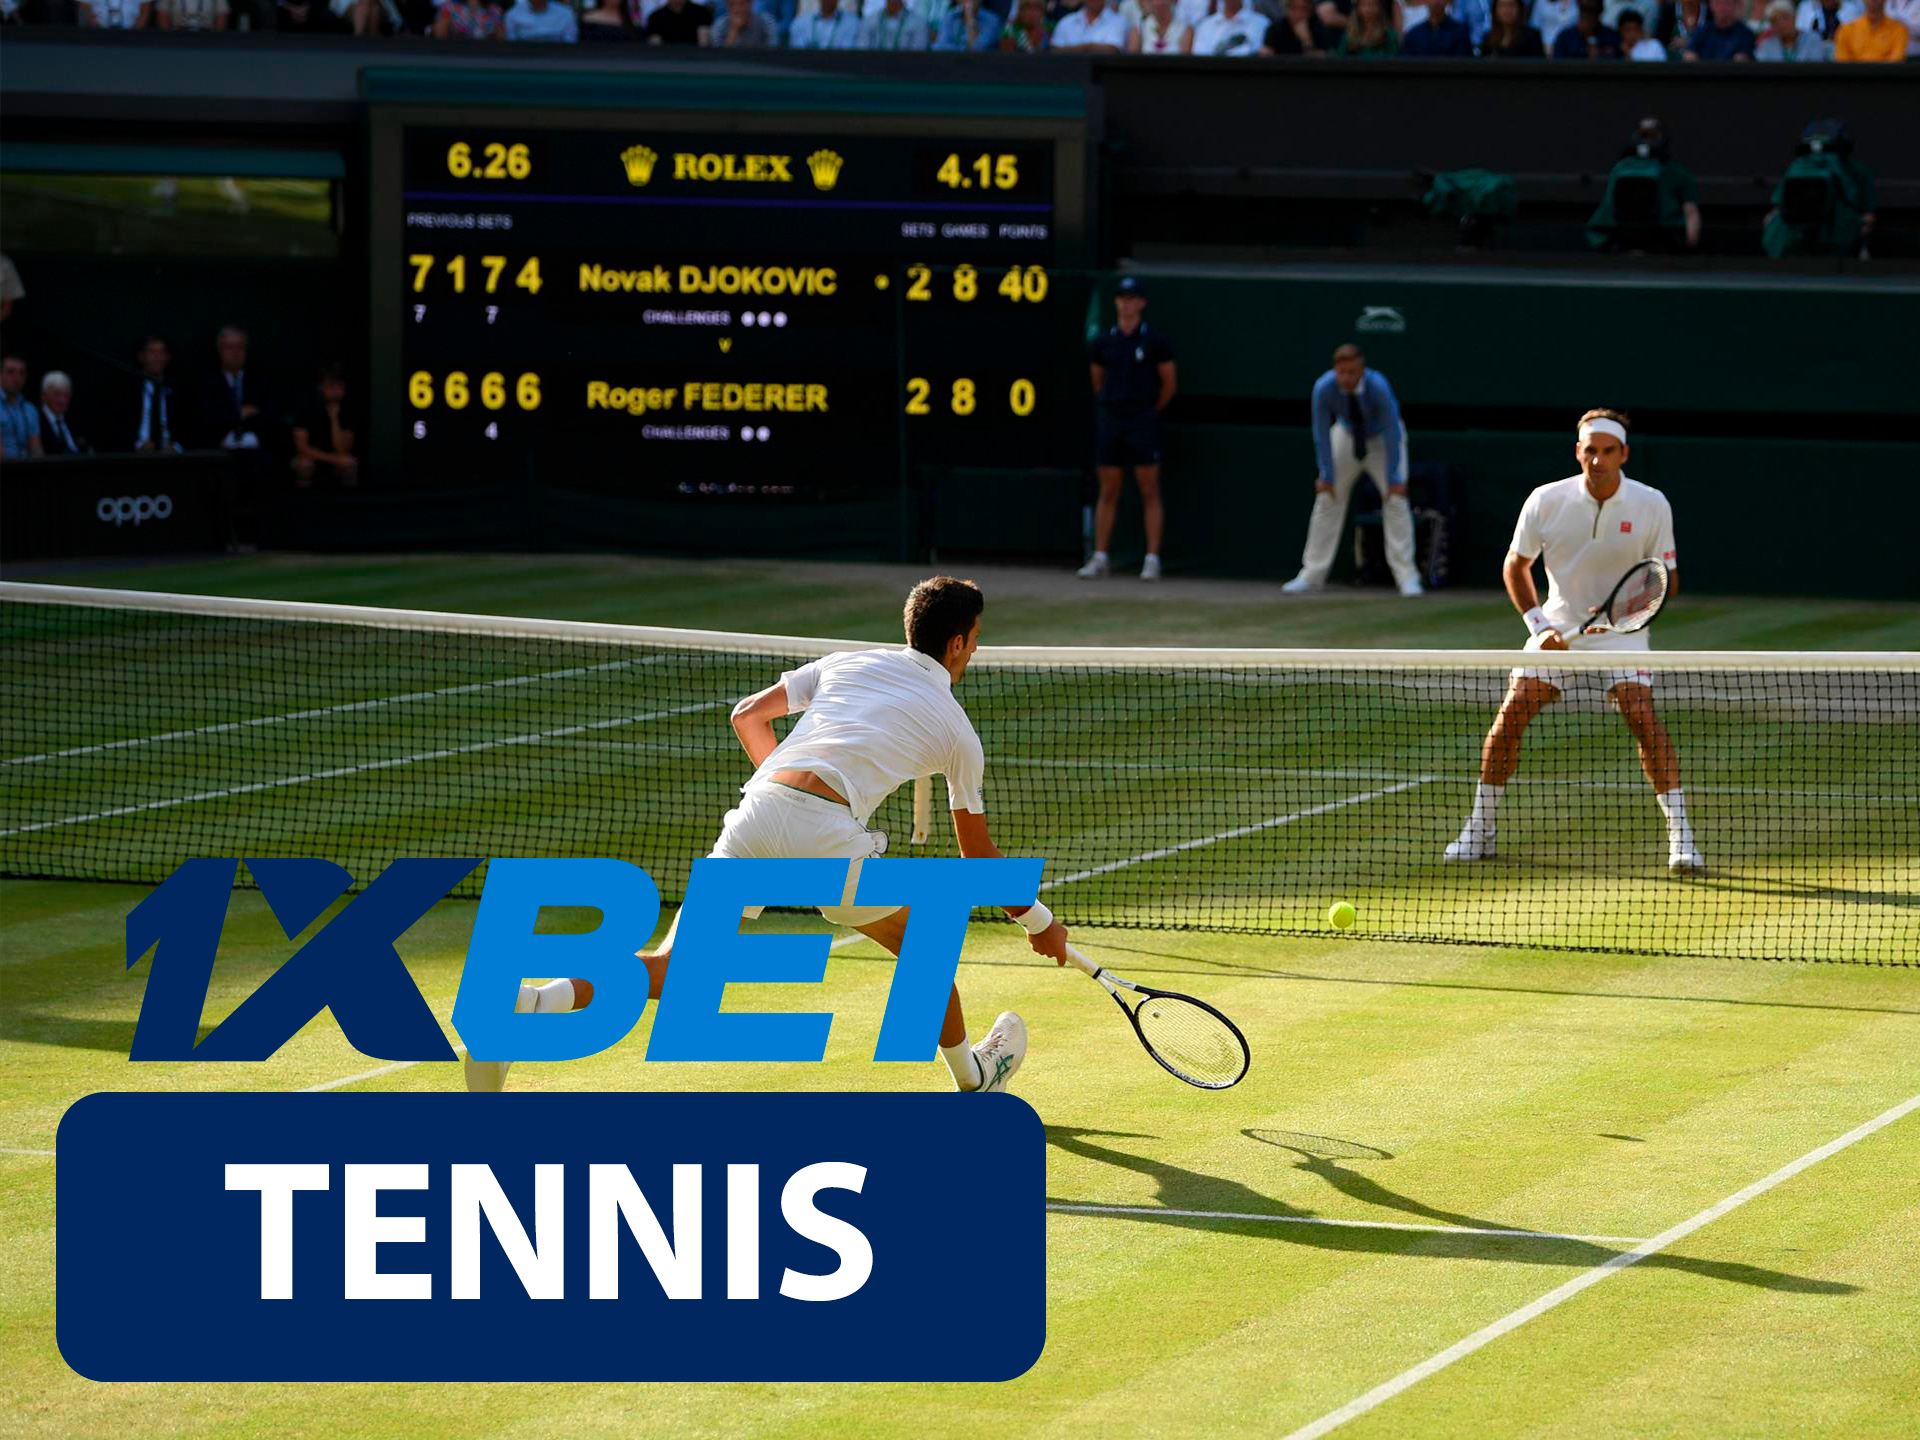 Start betting on tennis with 1xBet.